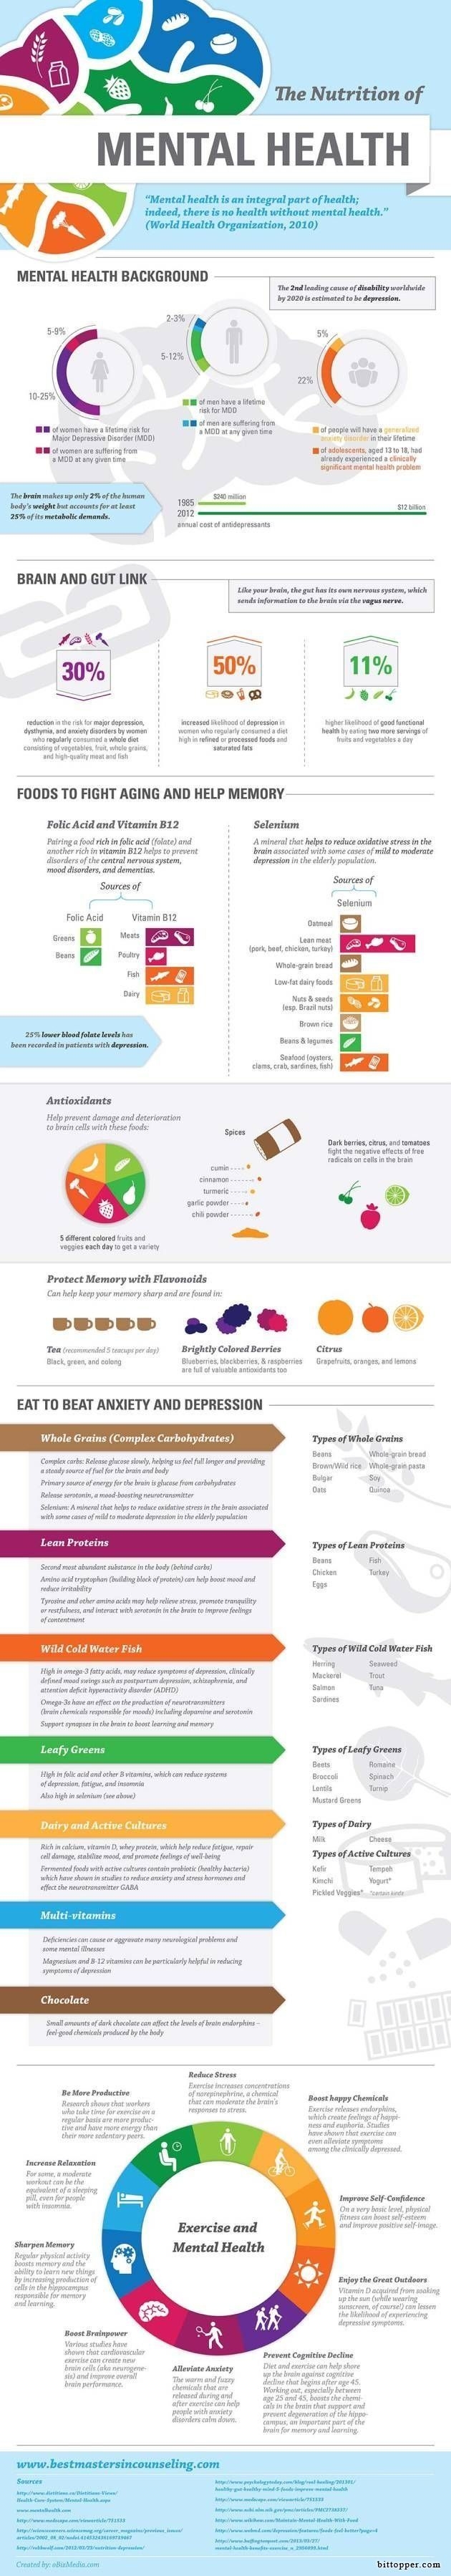 Exercise and Diet with Mental Health... best infographic I have seen in awhile for mental health